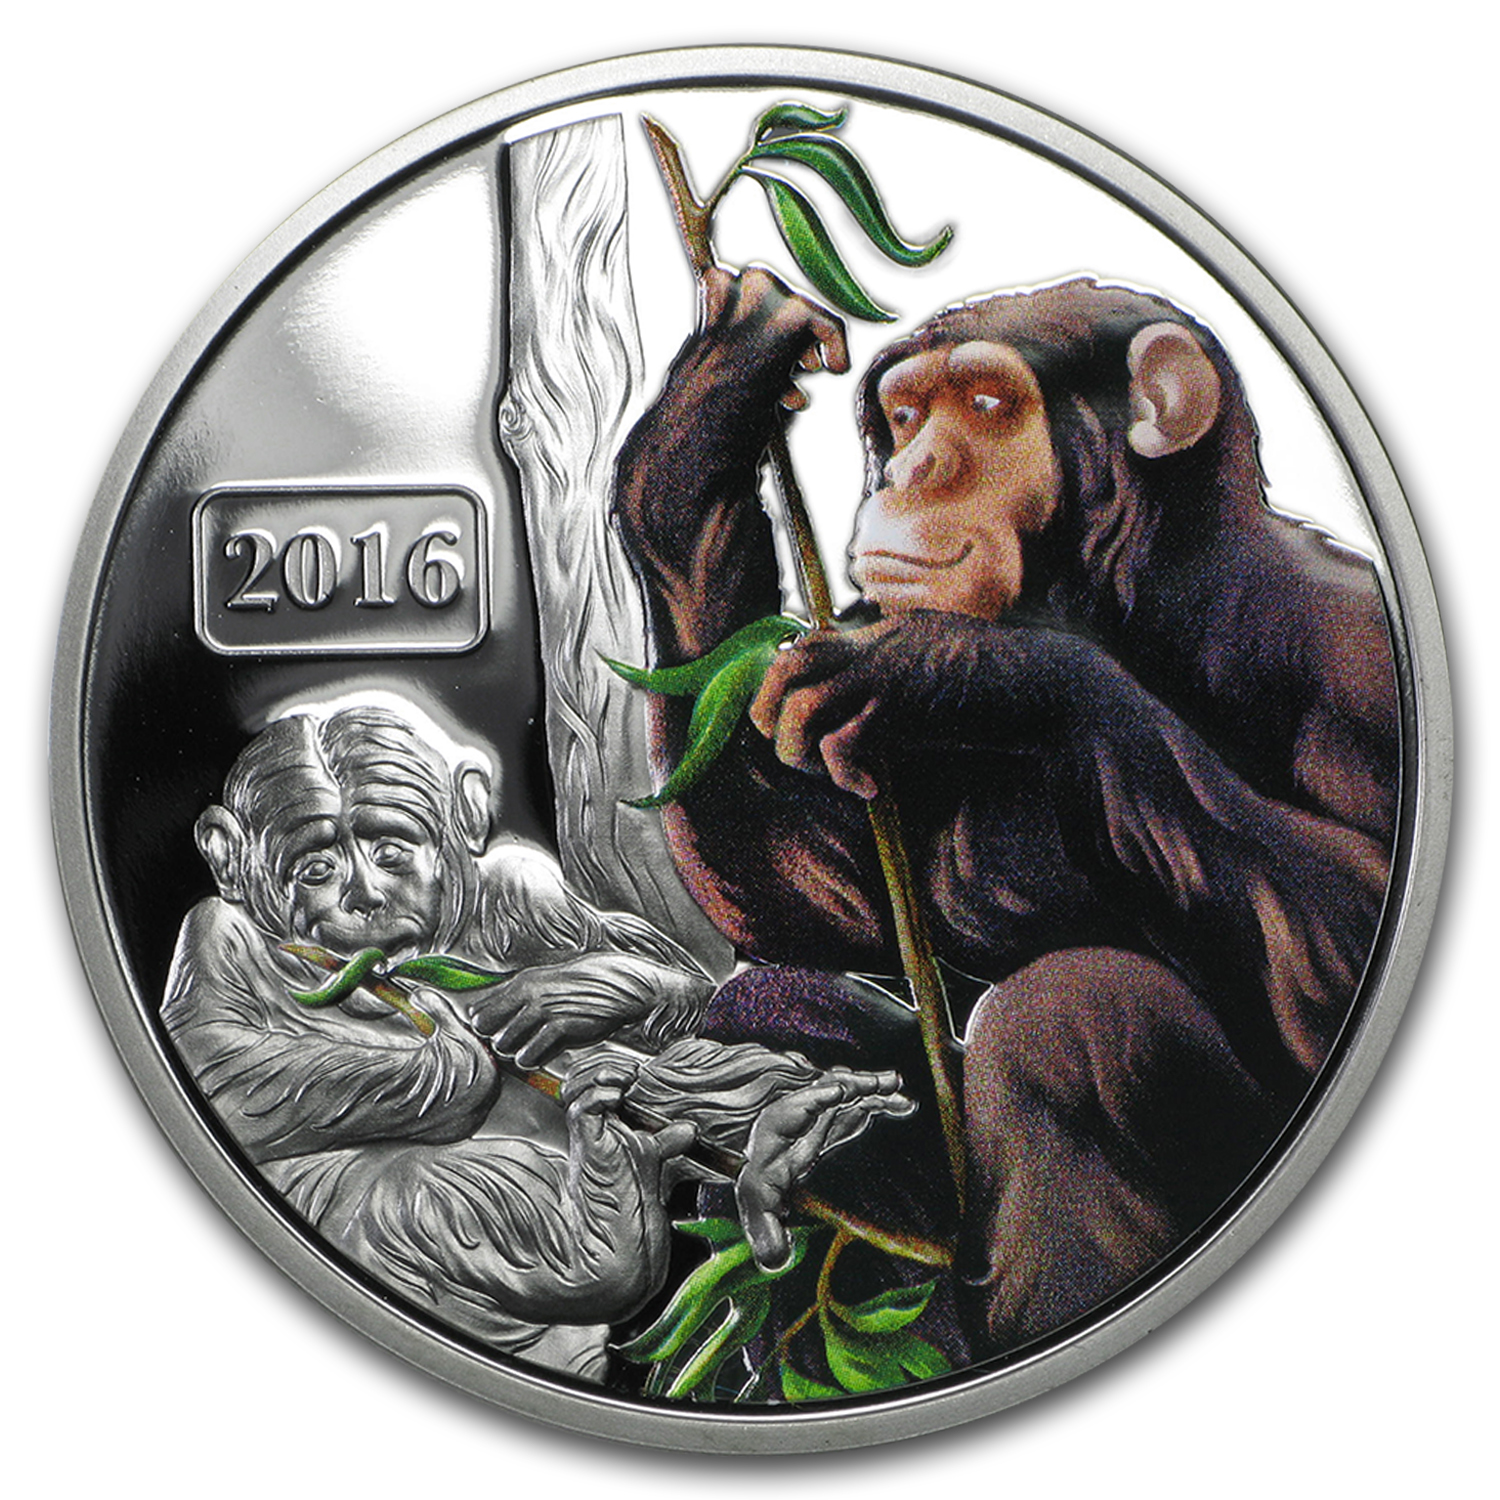 2016 Tokelau 1 oz Proof Silver Year of the Monkey Family (Color)